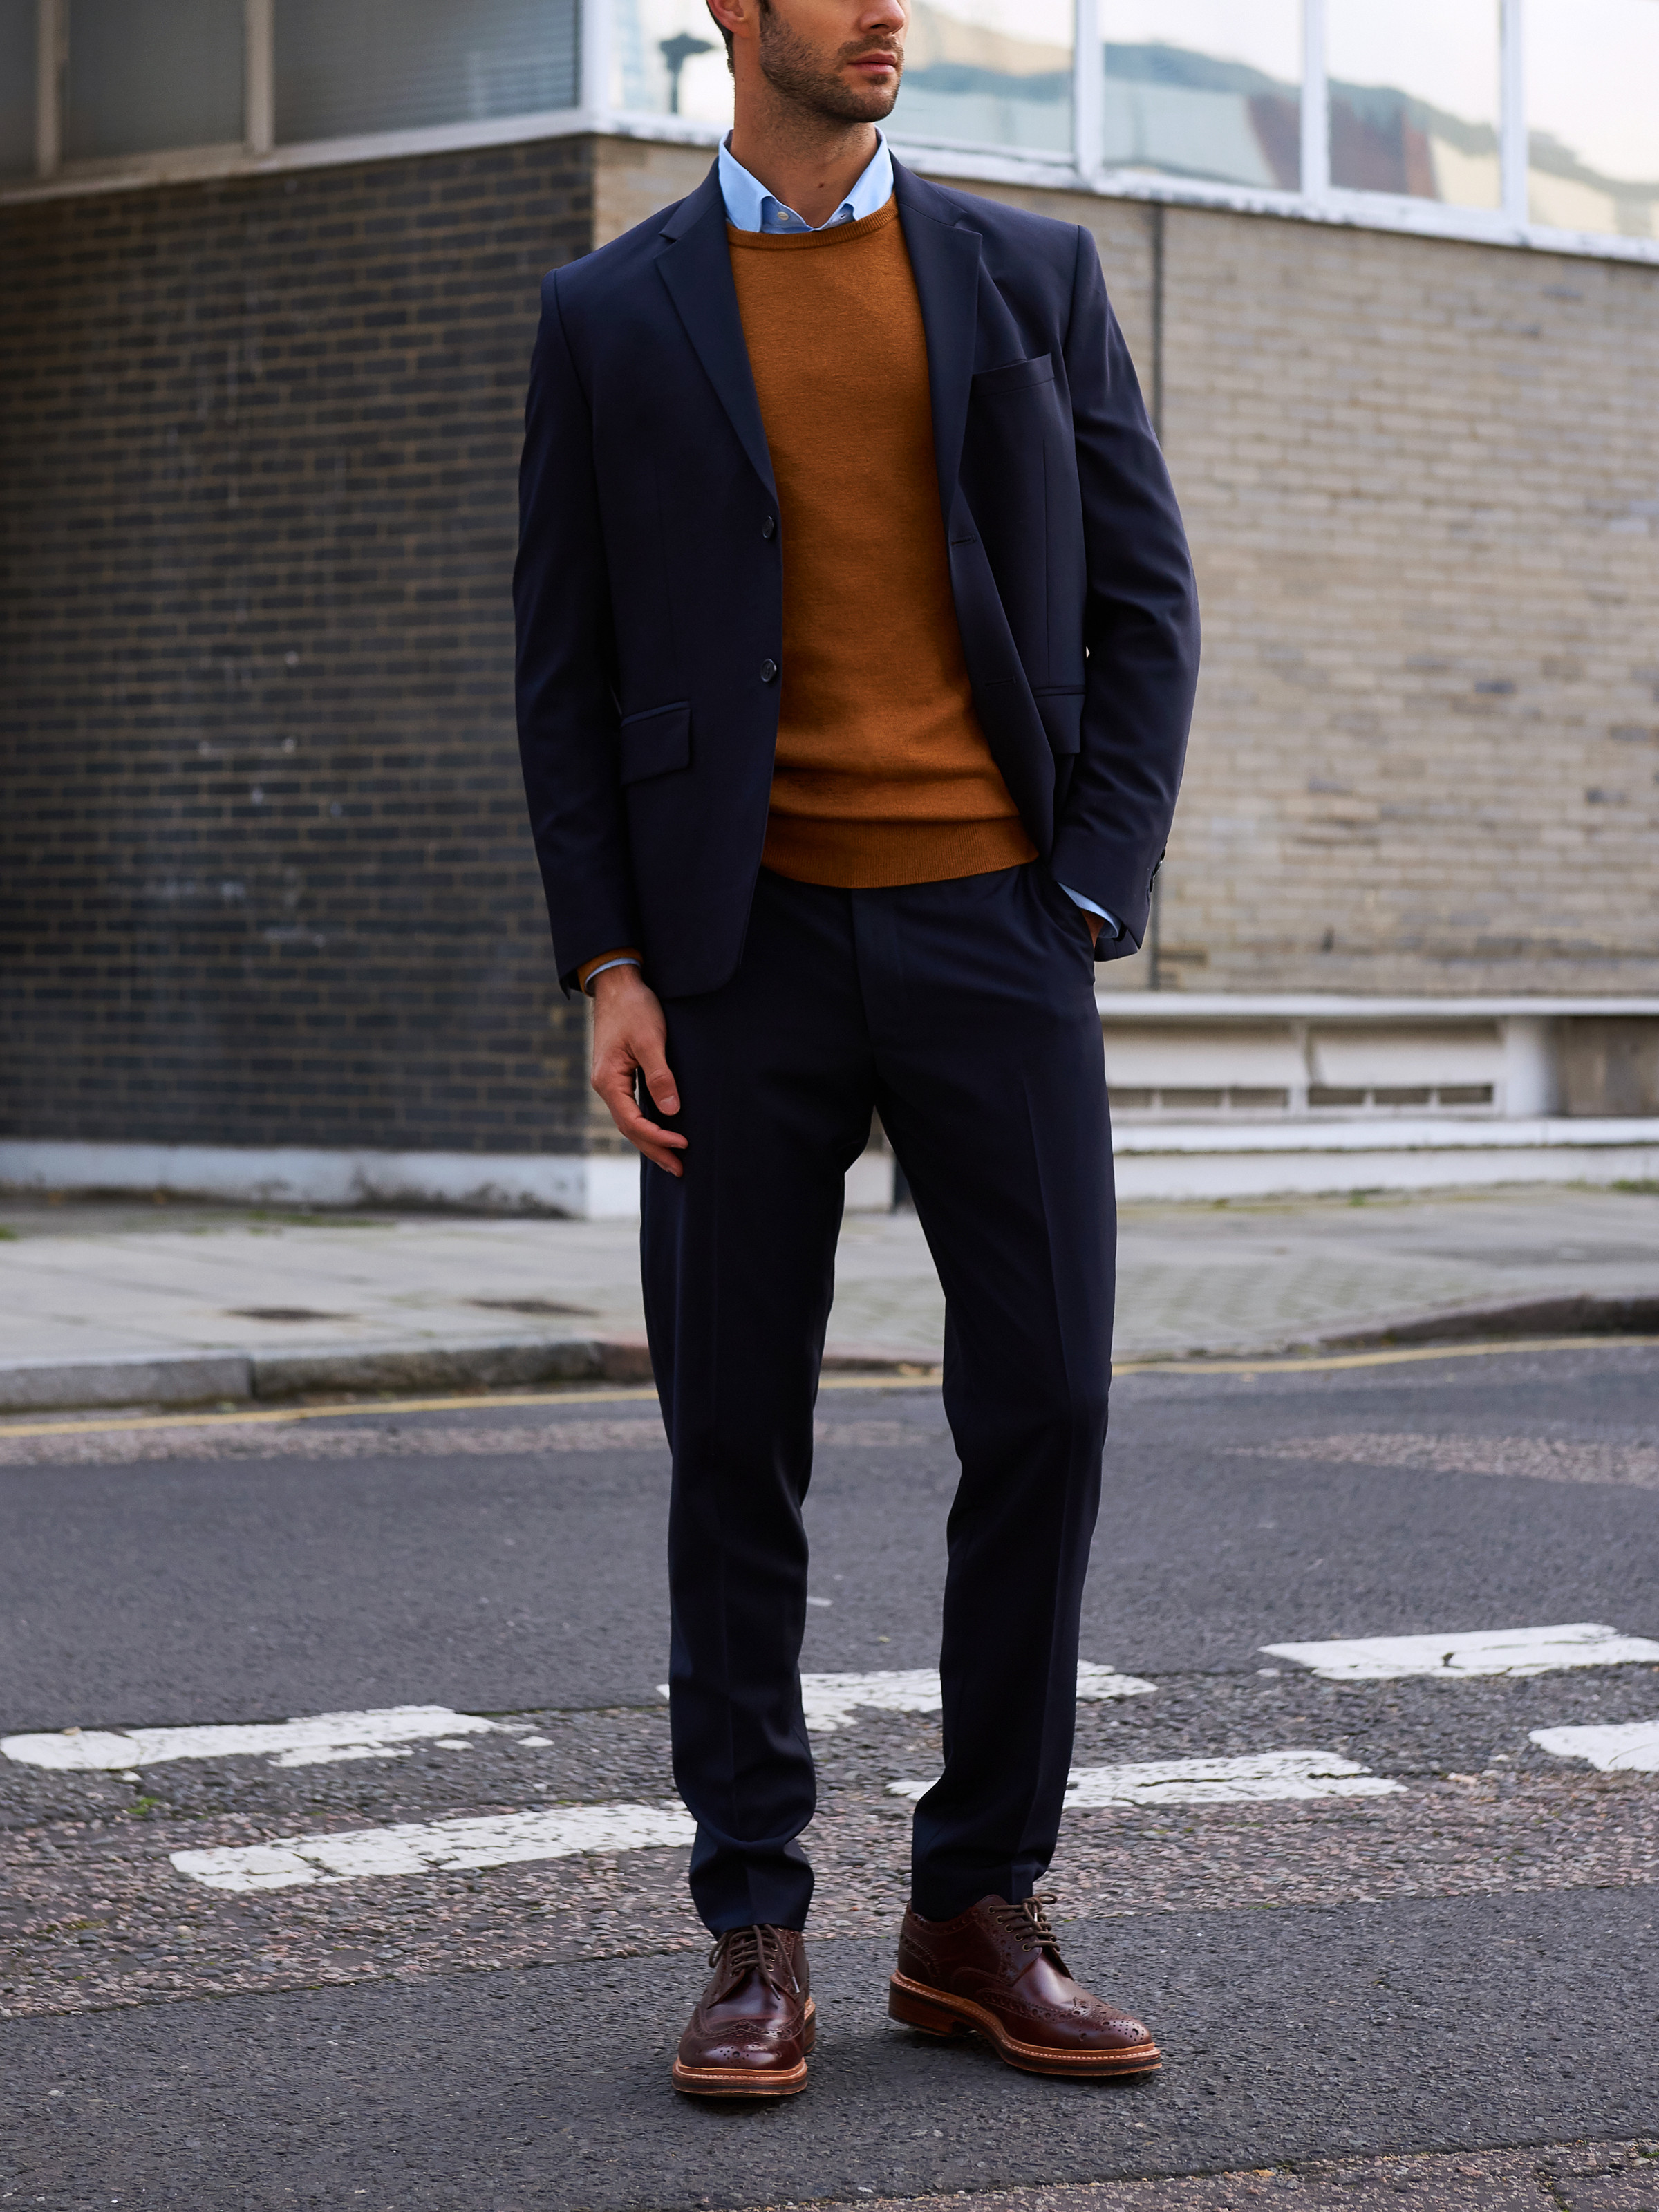 Men's outfit idea for 2021 with navy plain blazer, bold-colored crew neck sweater, blue dress shirt, navy plain dress pants, brown brogues. Suitable for fall and winter.